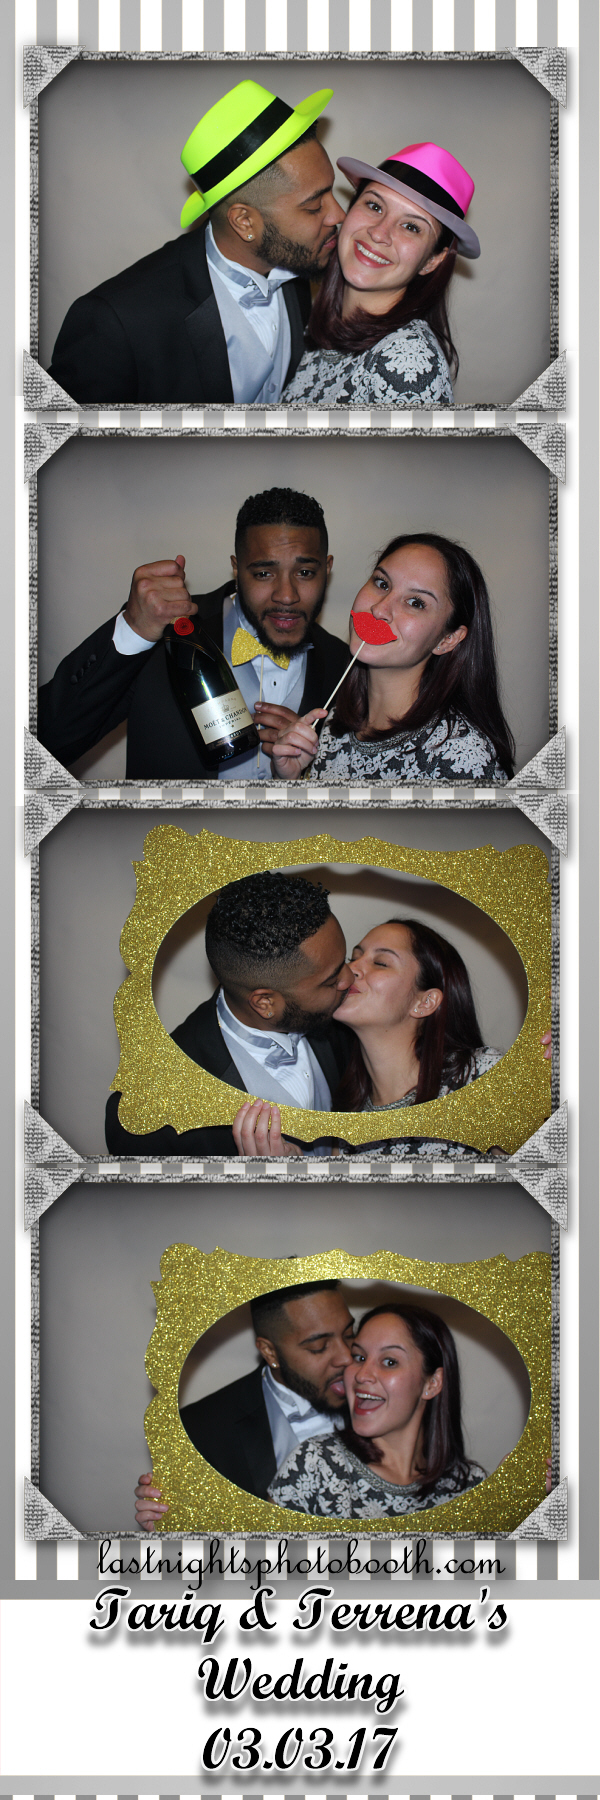 Photo Booth Rental for Tariq and Terrenas Wedding 2017_24